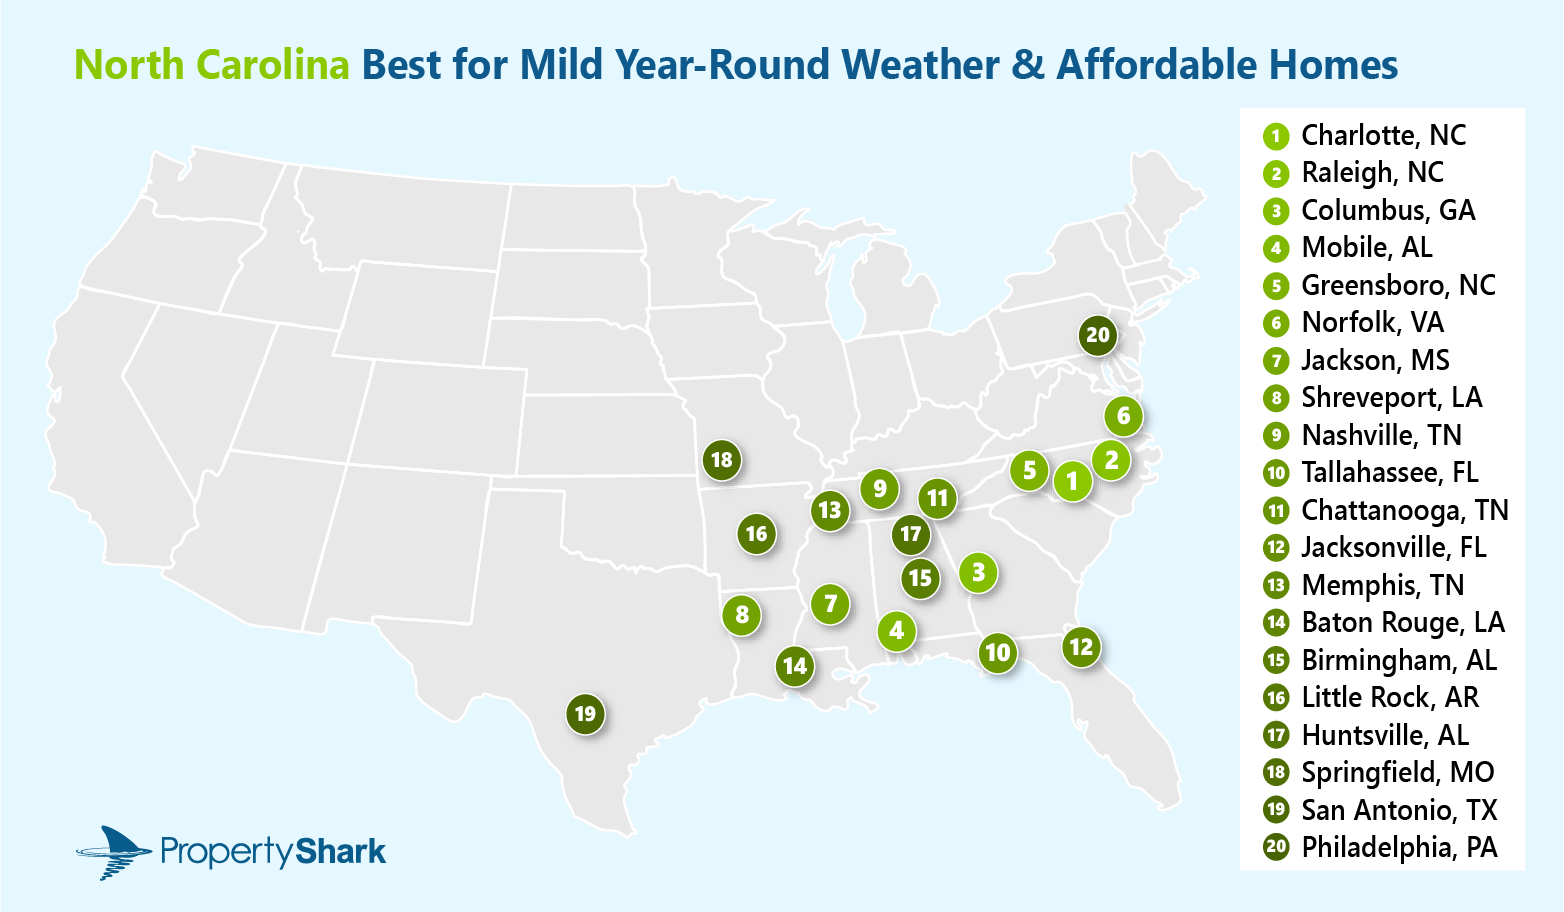 A map of the U.S. which highlights the top 20 cities which are affordable and have mild weather. The title of the image reads: North Carolina Best for Mild Year-Round Weather & Affordable Homes.